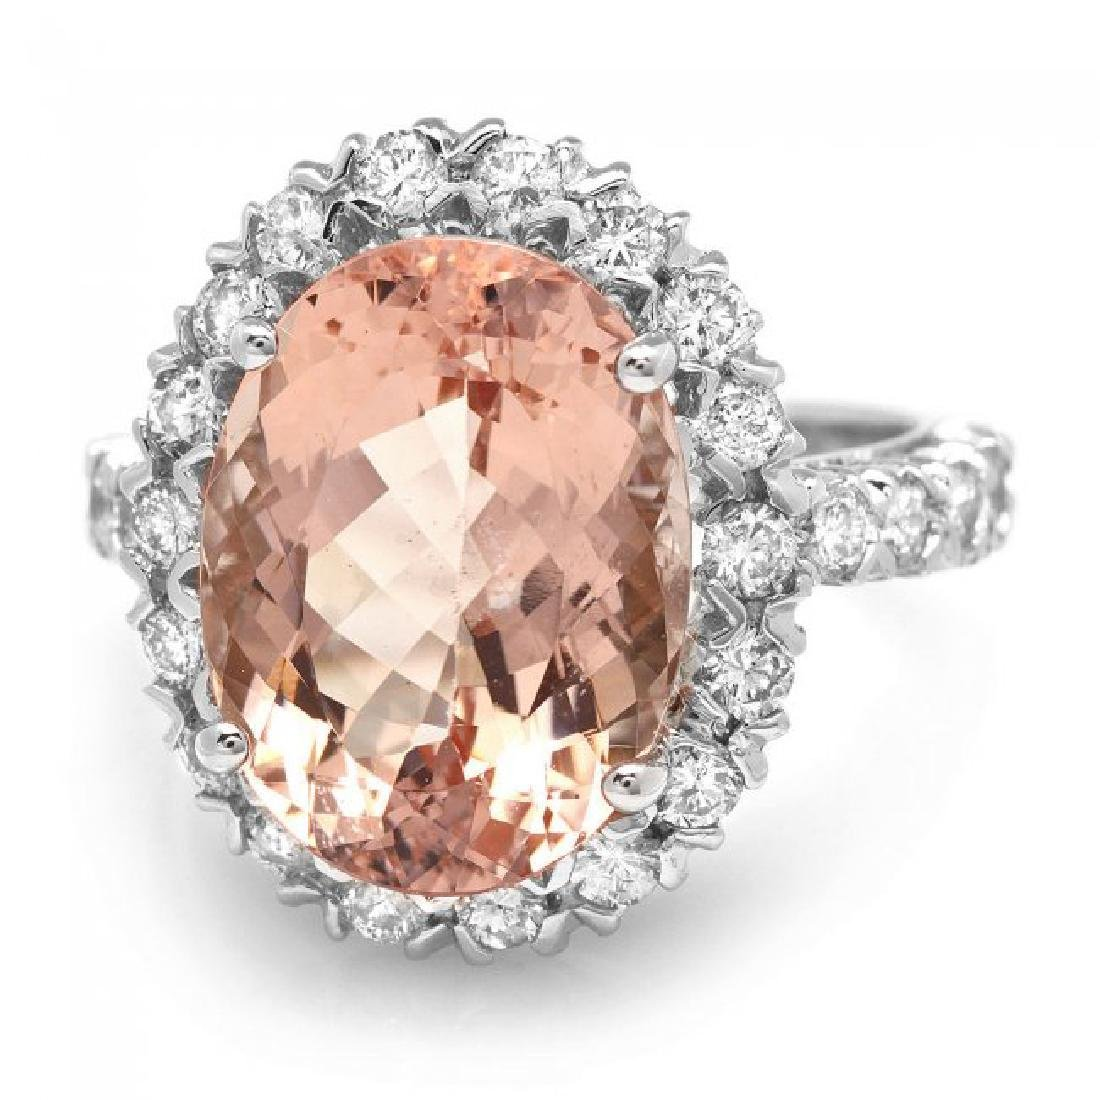 14k Gold 7.25ct Morganite 1.20ct Diamond Ring - 3